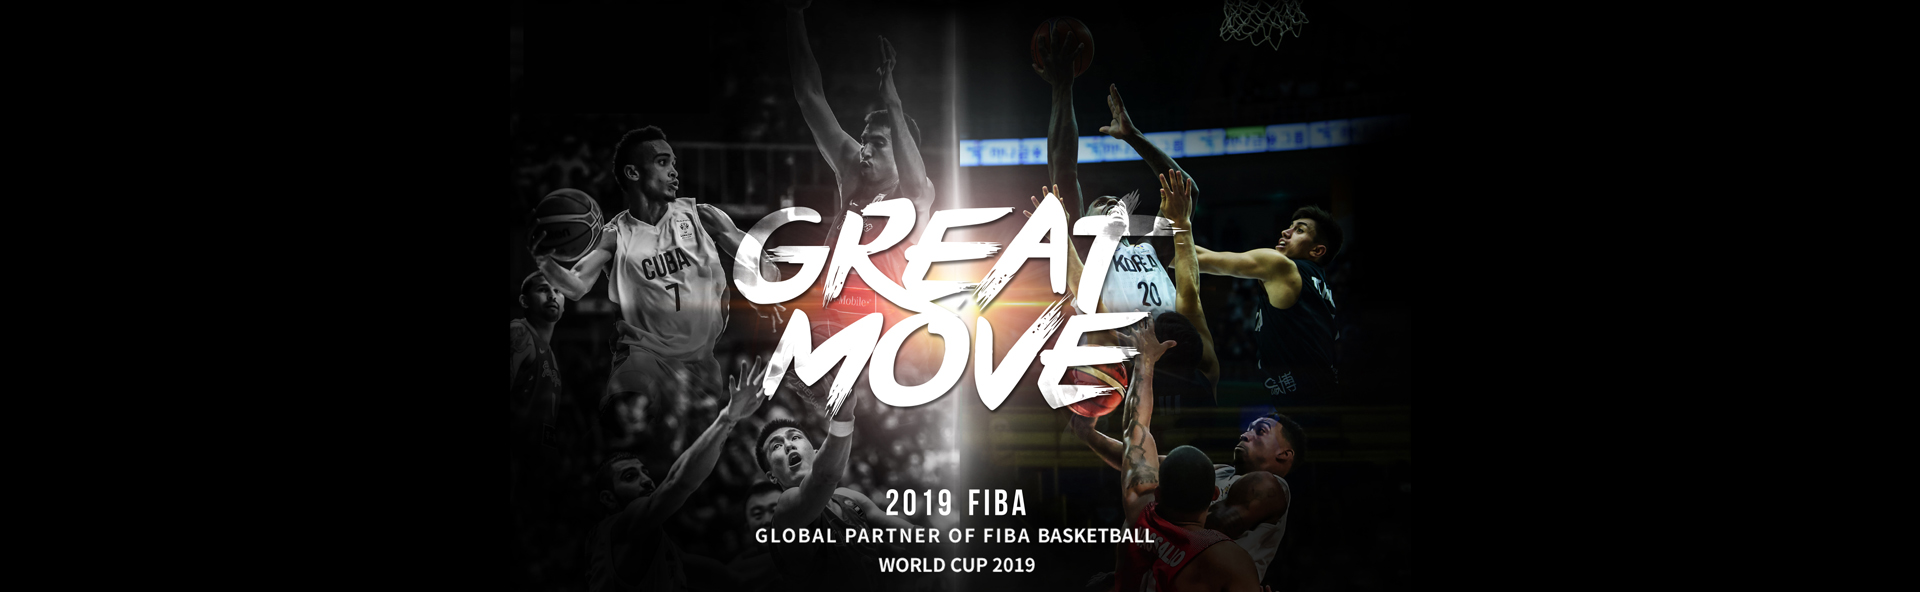 Alianzas TCL | Global Partner of FIBA Basketball World Cup 2019